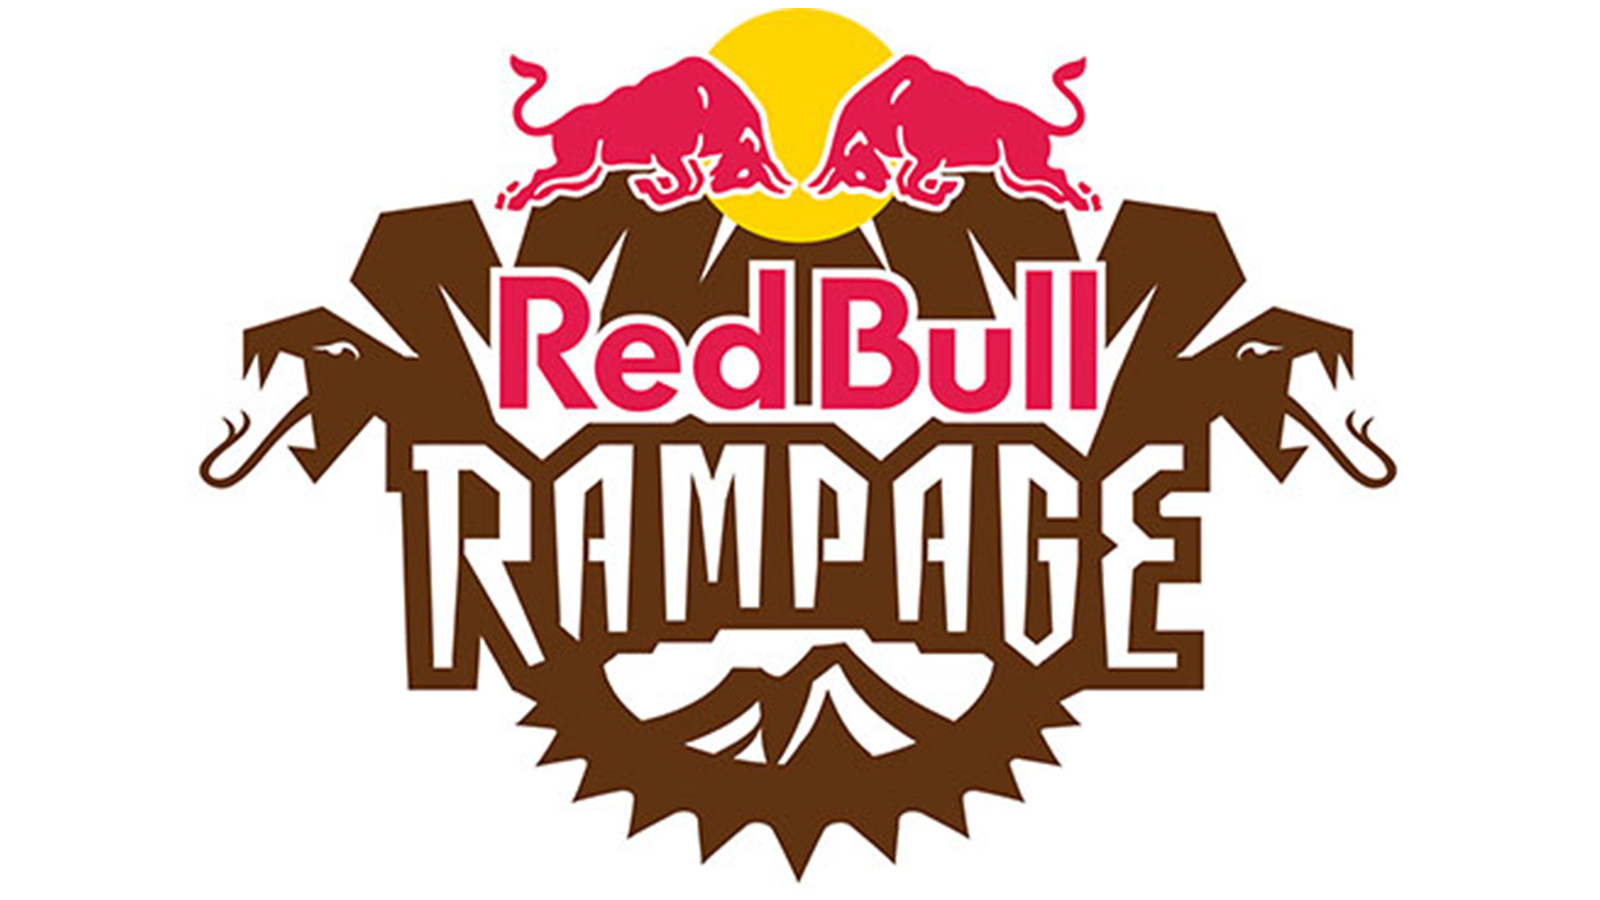 2018 RED BULL RAMPAGE RETURNS WITH A BRAND NEW VENUE